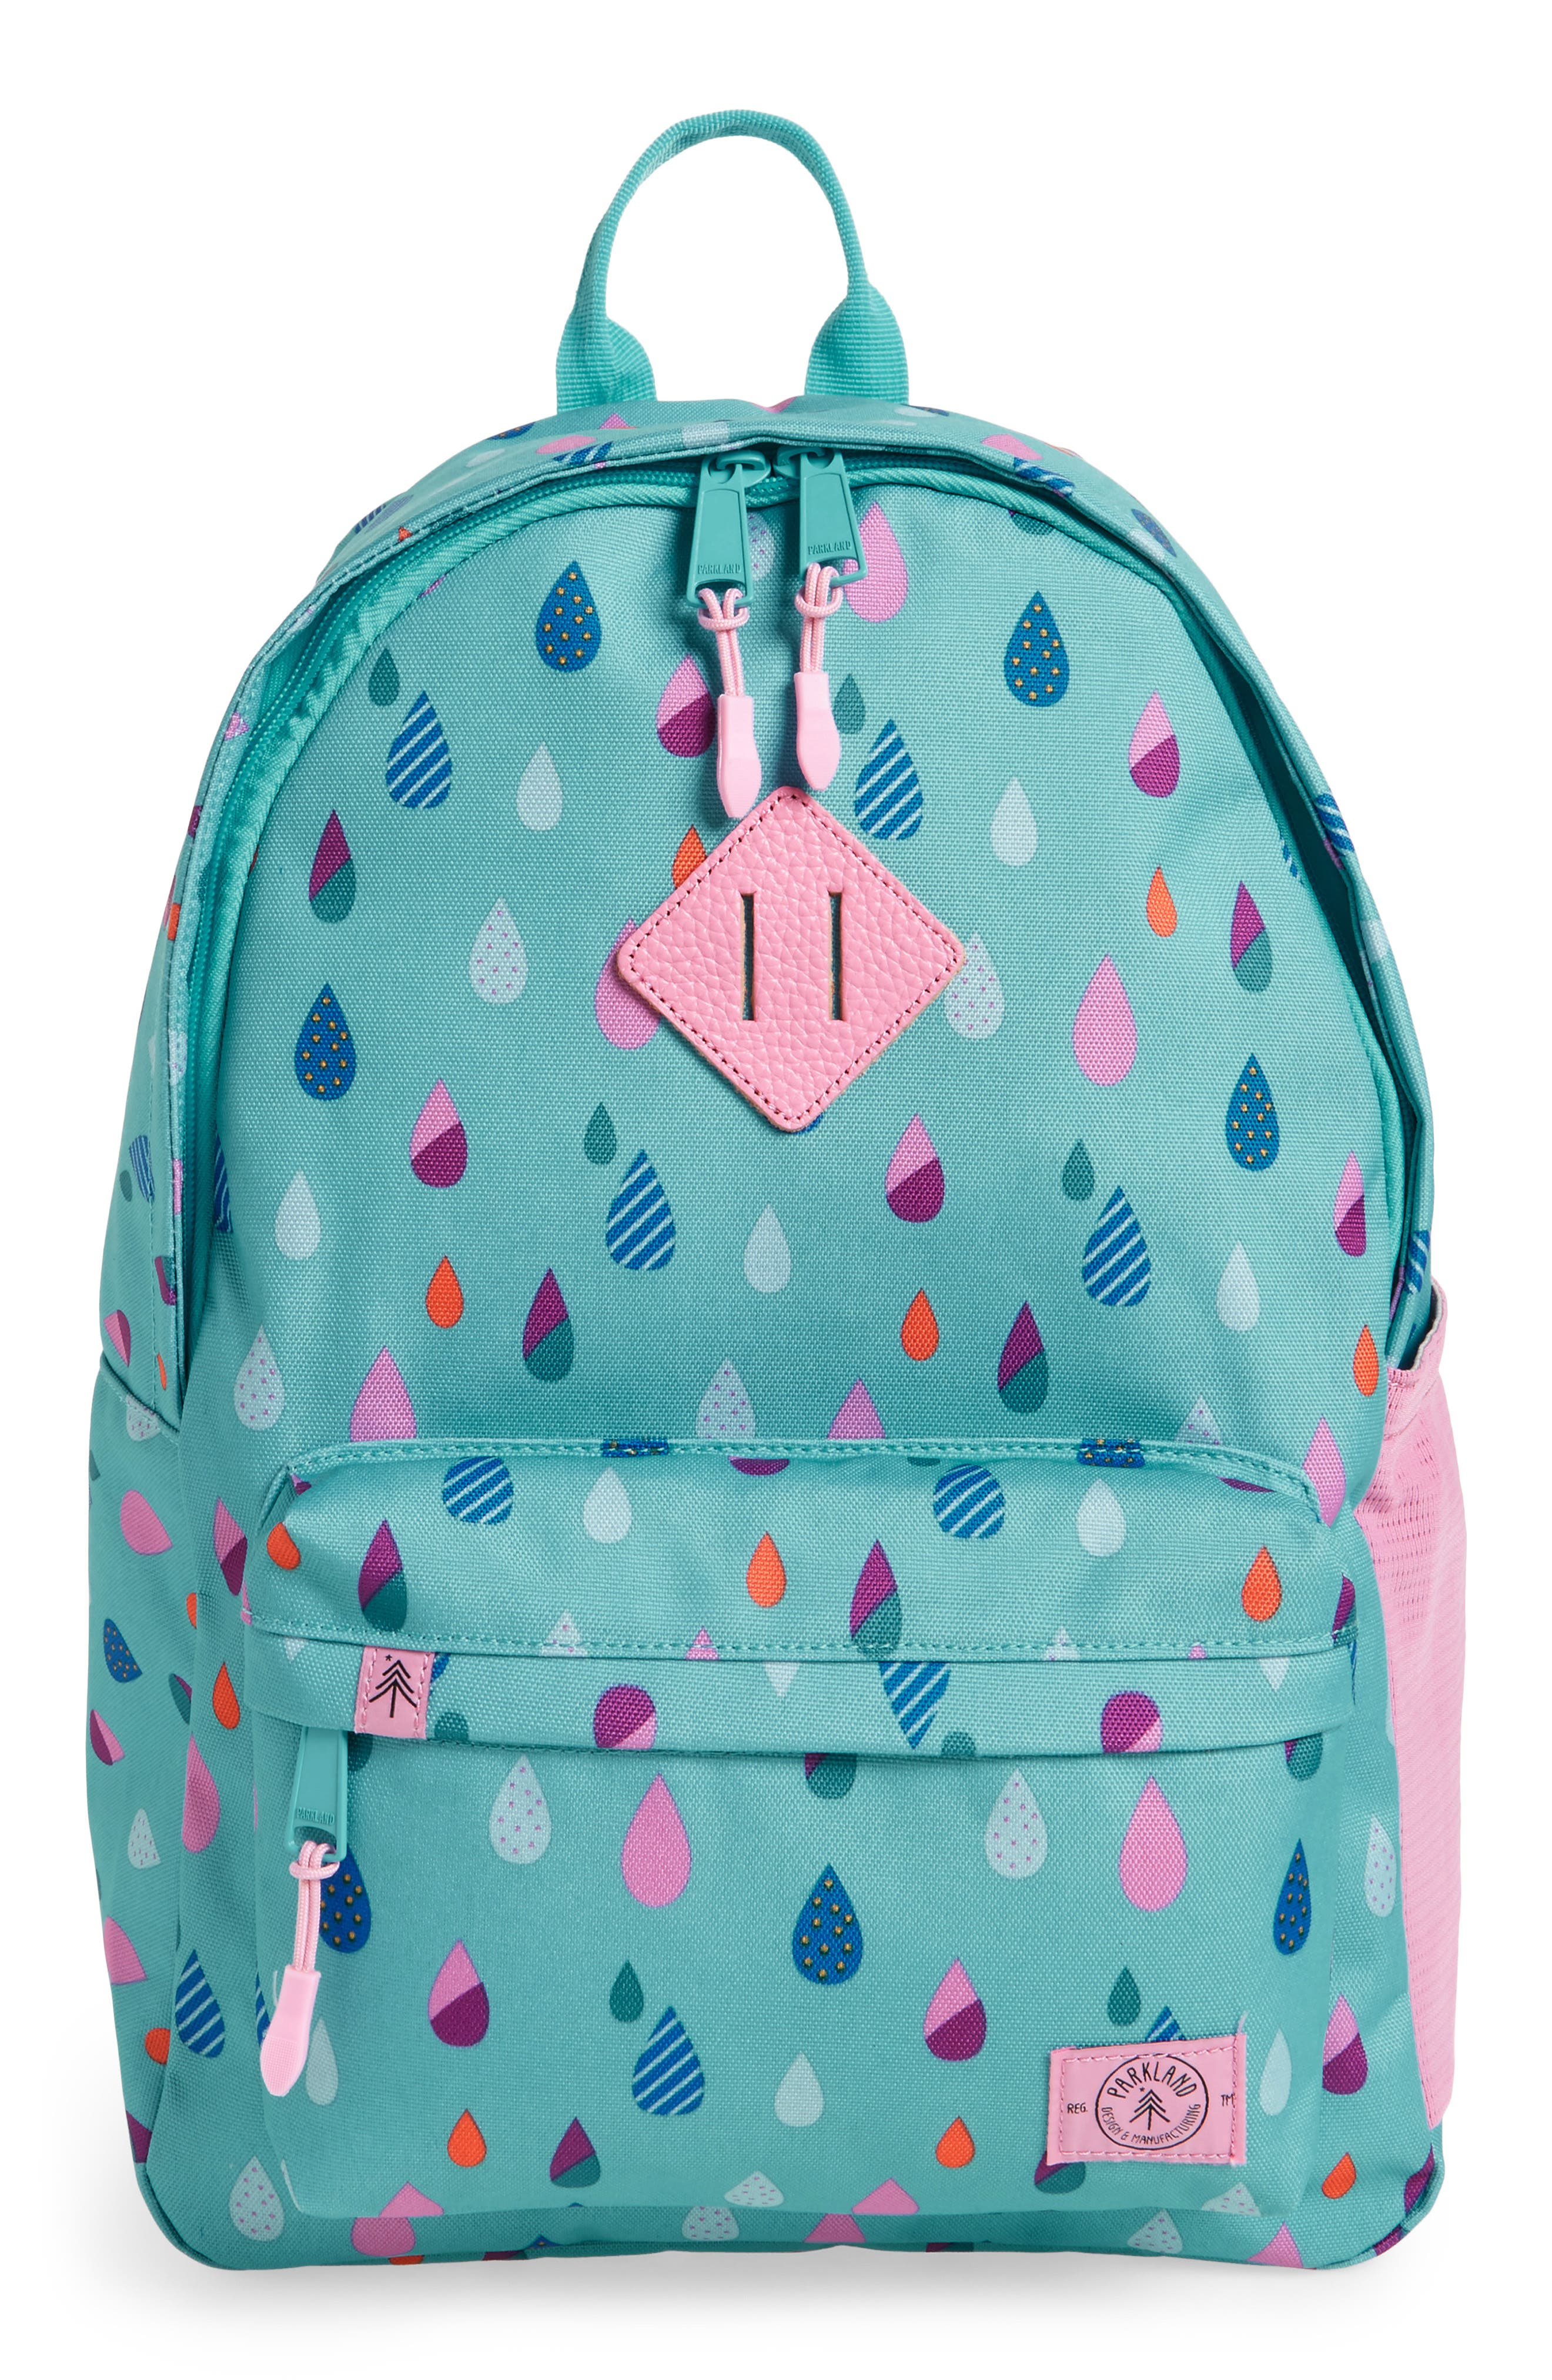 Bayside - Puddles Backpack,                             Main thumbnail 1, color,                             458